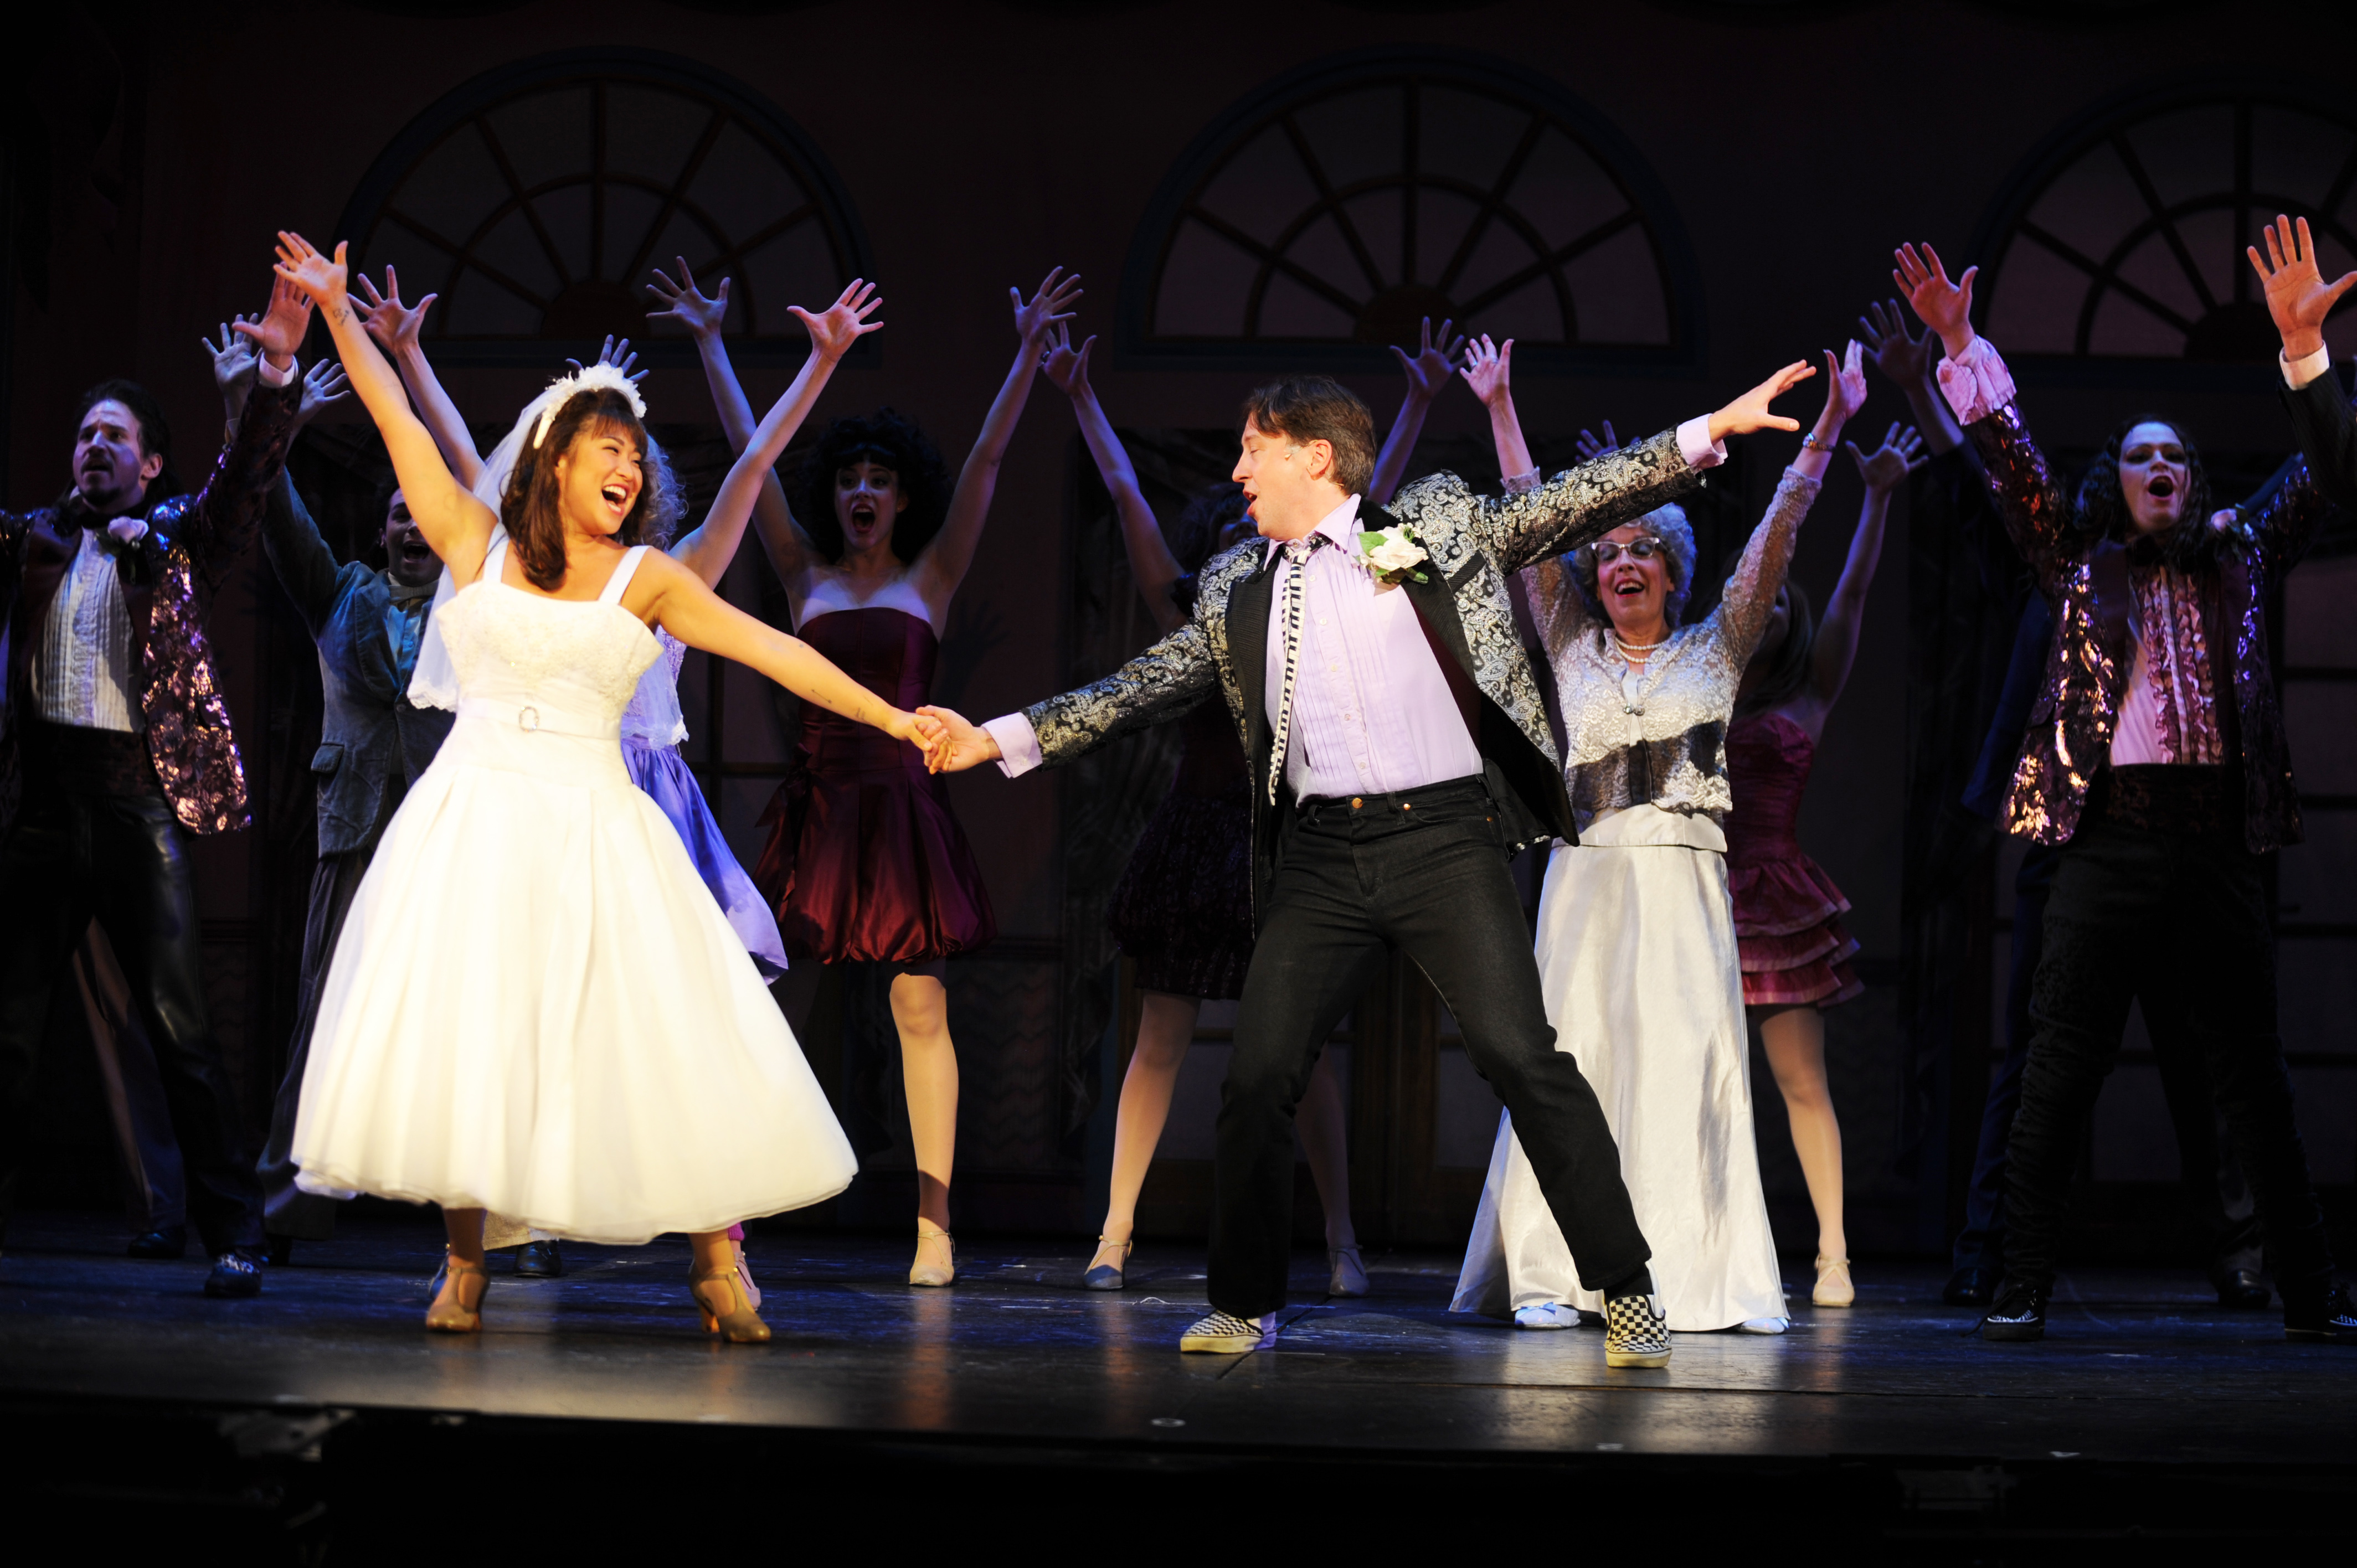 Pittsburgh Post-Gazette review: The Wedding Singer brings high energy and '80s nostalgia